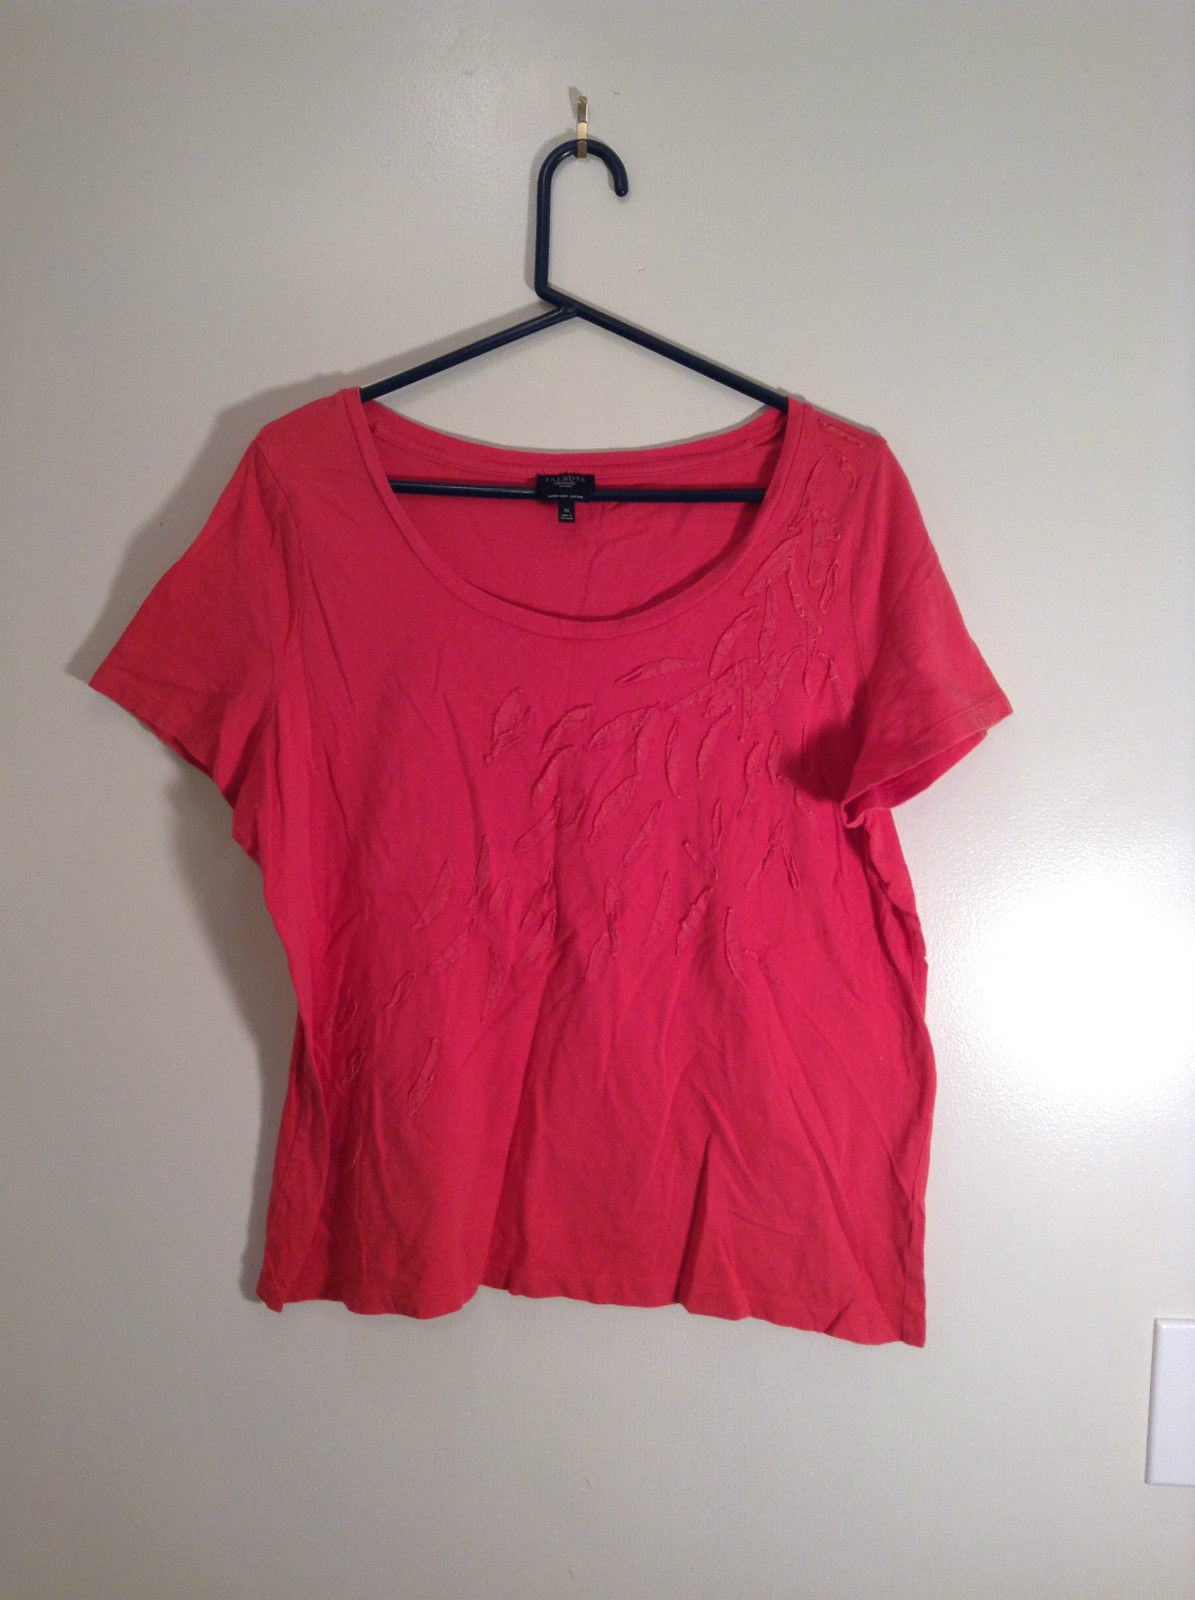 Red Talbots Short Sleeve Cotton Rounded Neckline Top Pattern on Front Size 1X